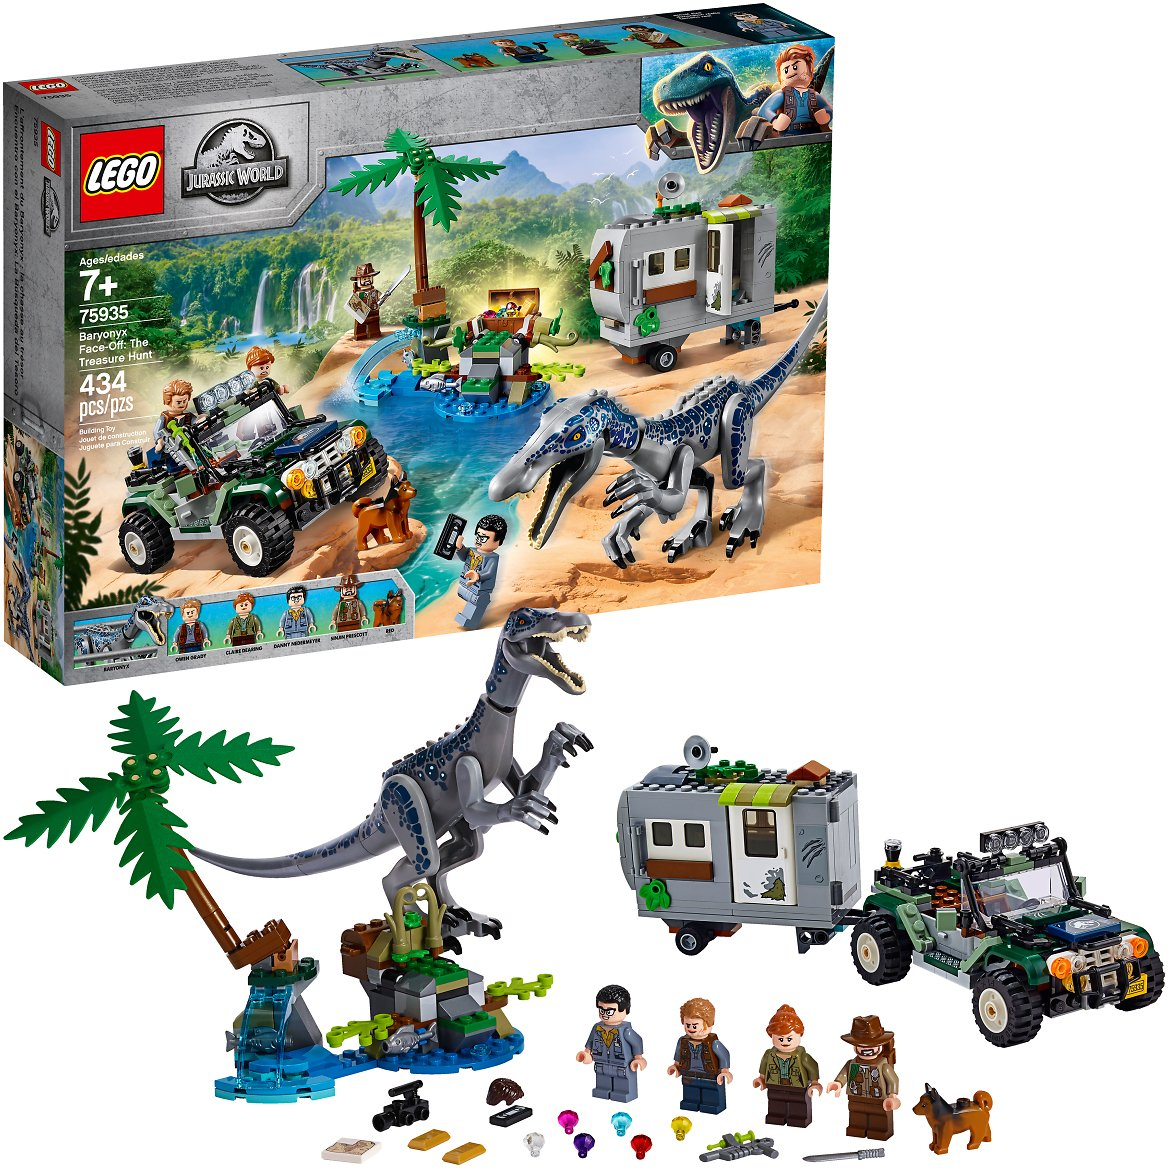 LEGO Jurassic World Baryonyx Face-Off: The Treasure Hunt 75935 (434 Pieces)